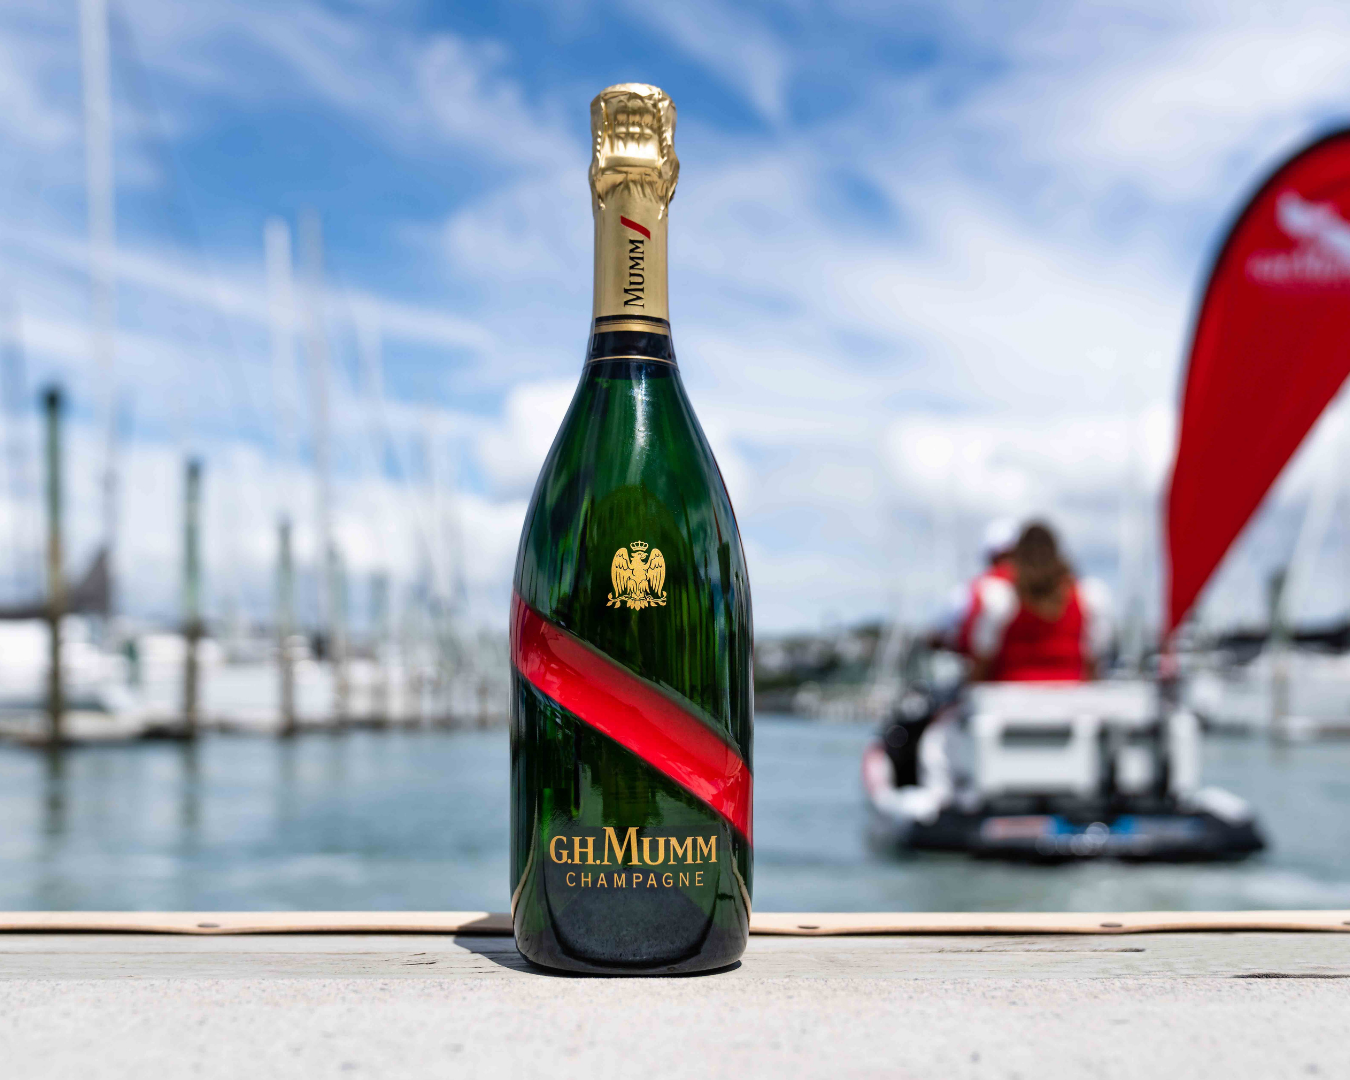 Bottle of G.H Mumm's champagne on the dock with the jet ski in the background